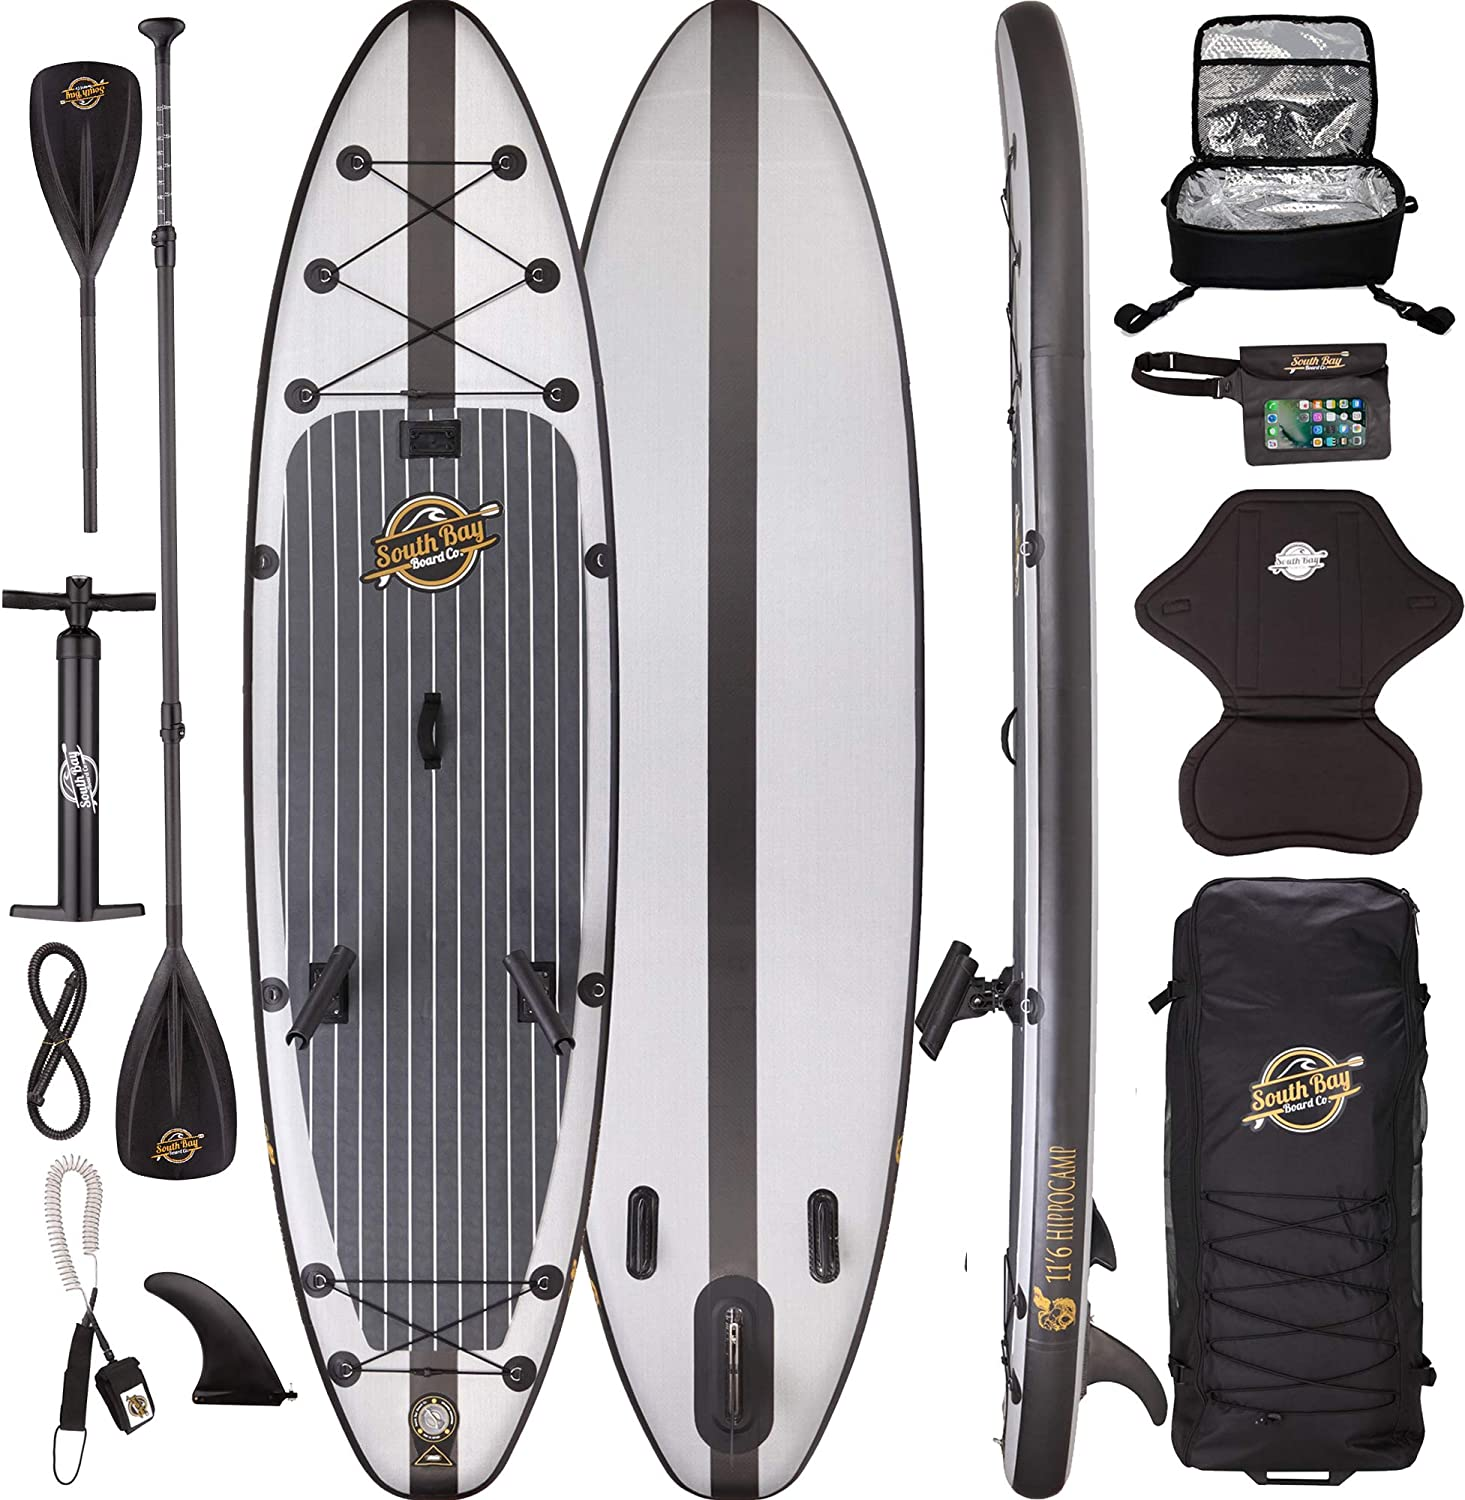 Premium Inflatable Stand Up Paddle Board Package – 11 6 Hippocamp Fishing ISUP